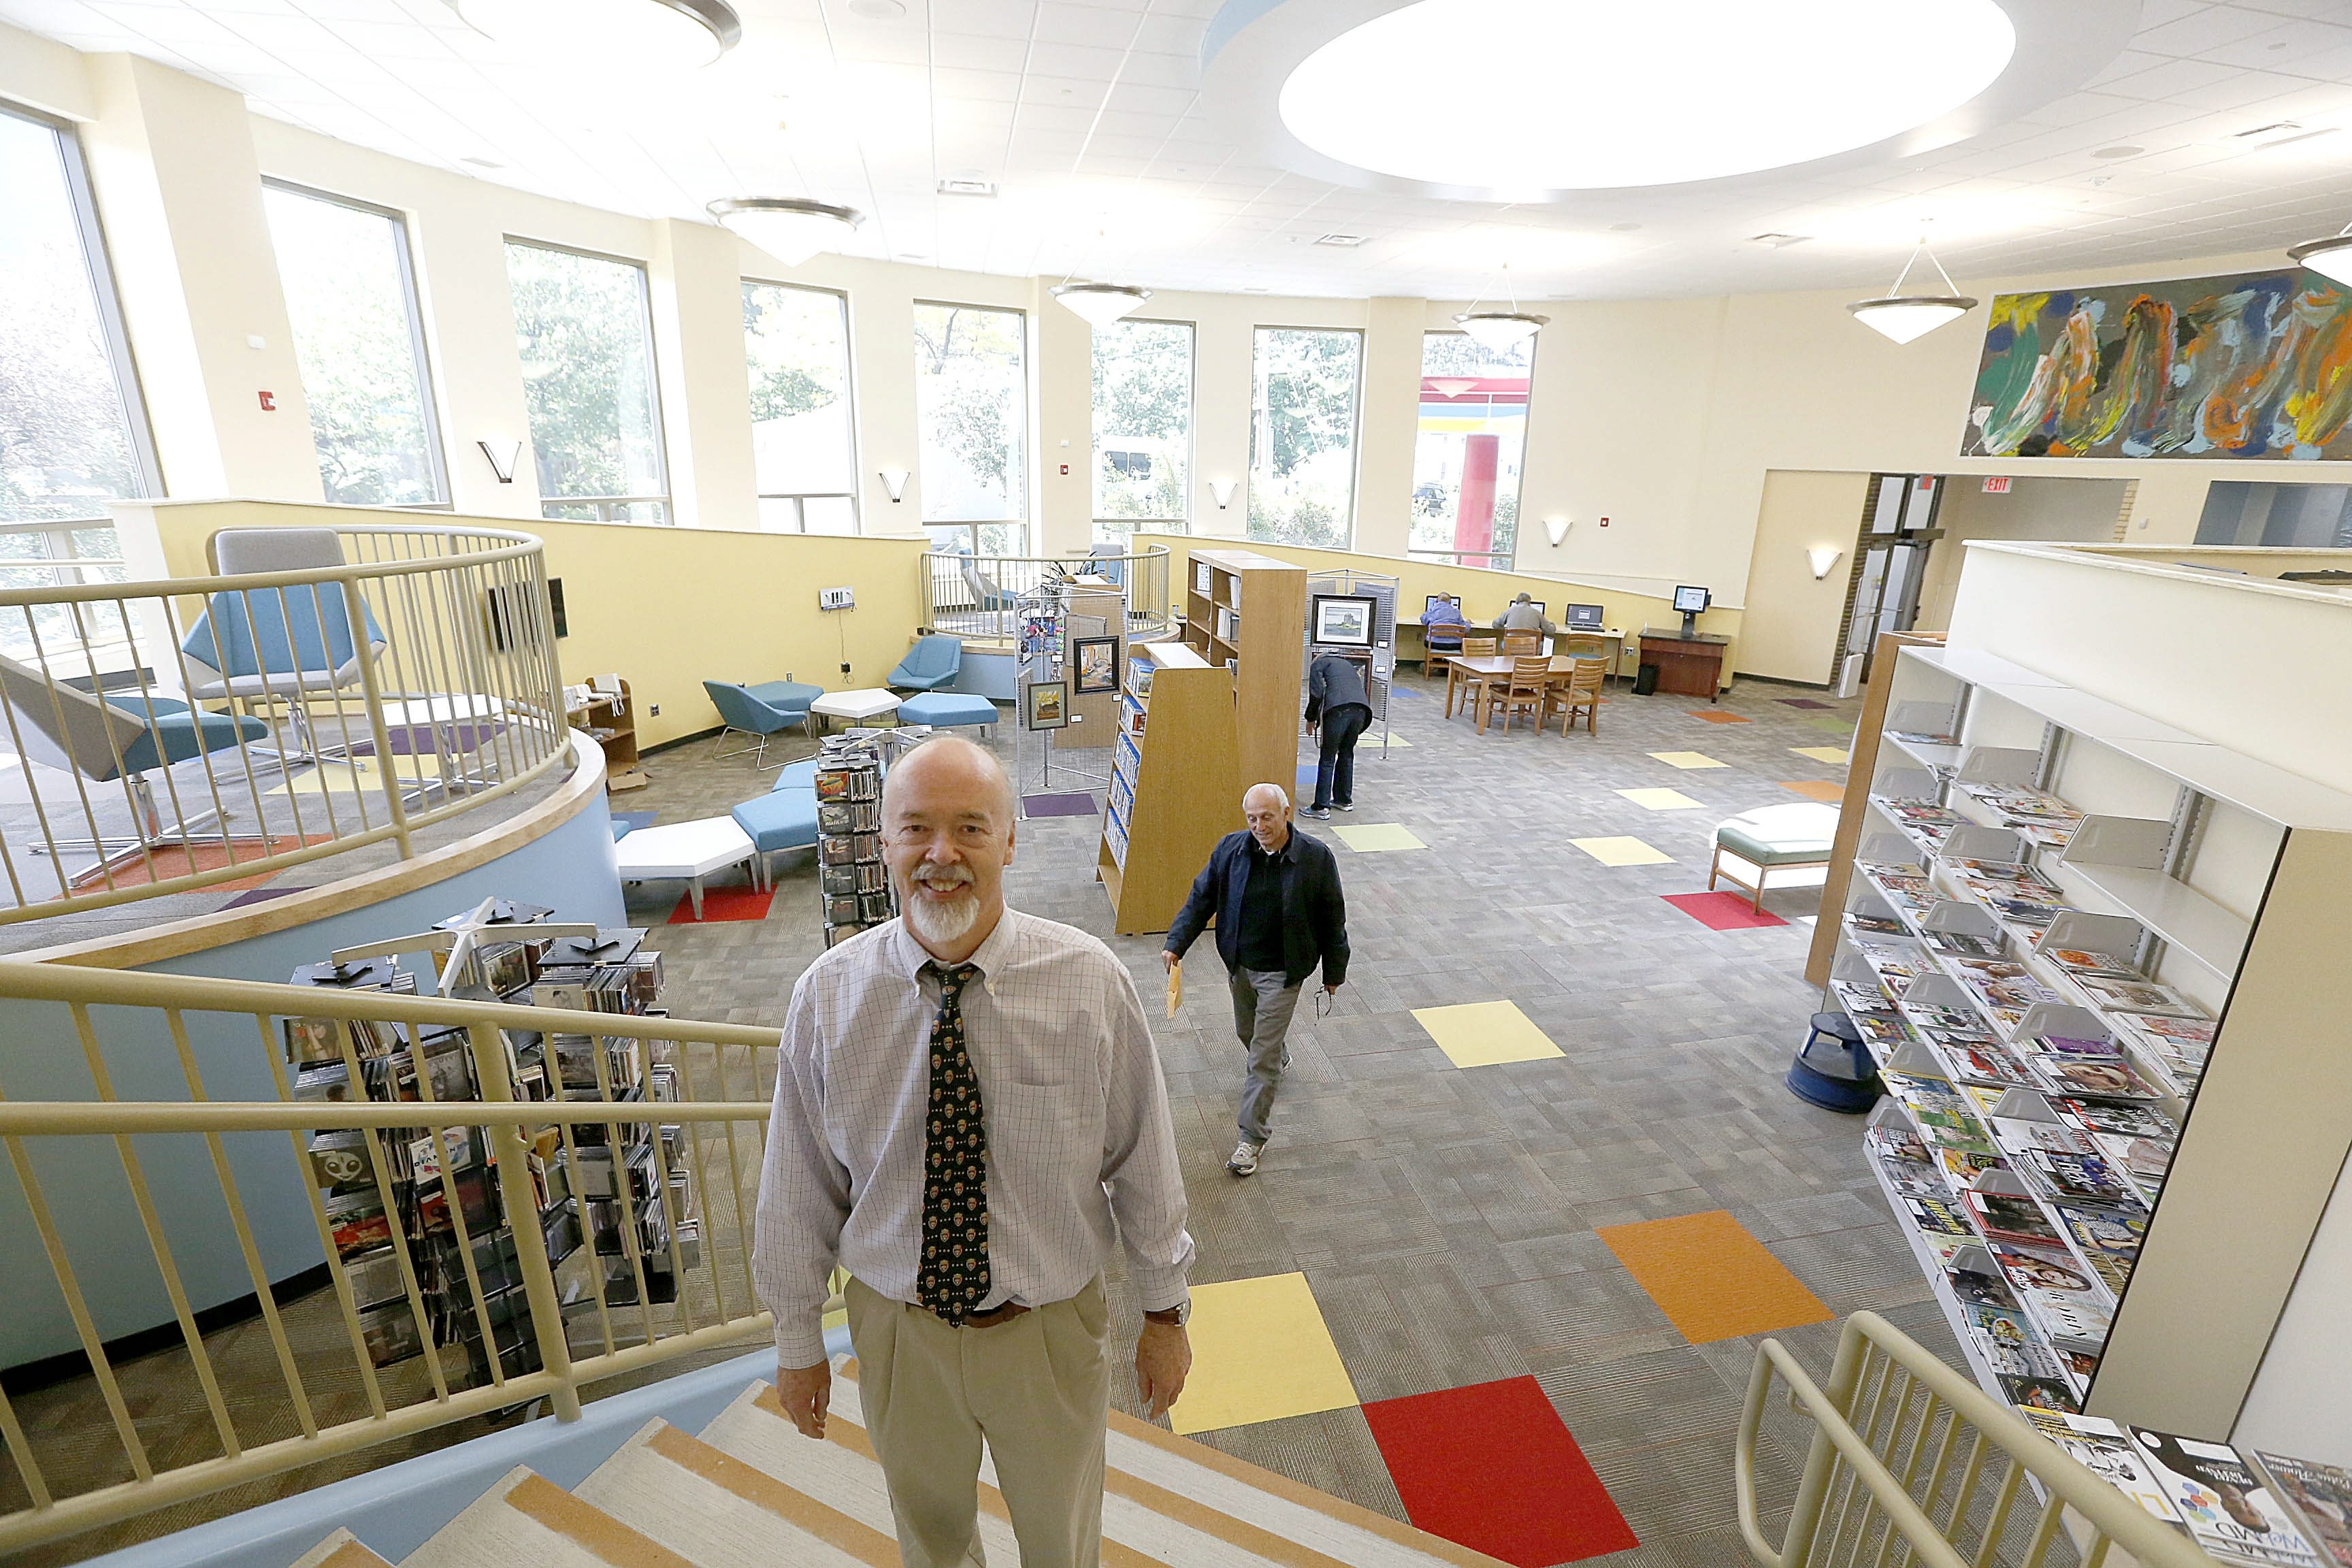 Library Director Jack Edson at the recently remodeled and expanded Hamburg Public Library on Wednesday. He noted that years ago, visitors were expected to sit quietly and refrain from eating. That's no longer the case.